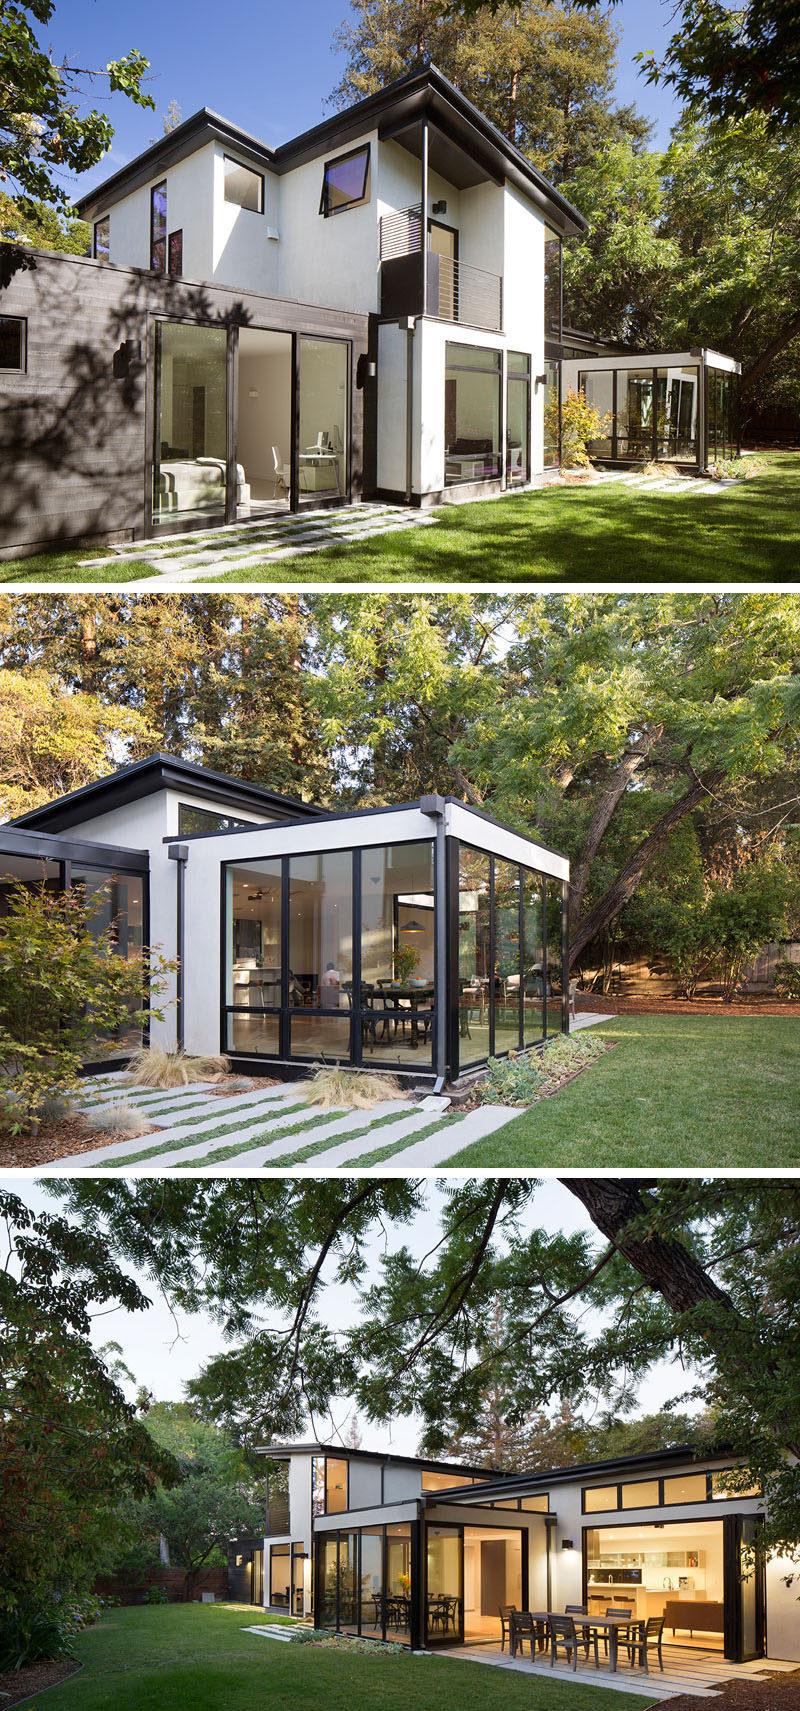 From the backyard of this modern house, you can see themaster bedroom, which is located on the ground floor, while the boys' upstairs rooms have a treehouse-like feel. There's also a patio area that's furnished as an outdoor dining area. #ModernHouse #Architecture